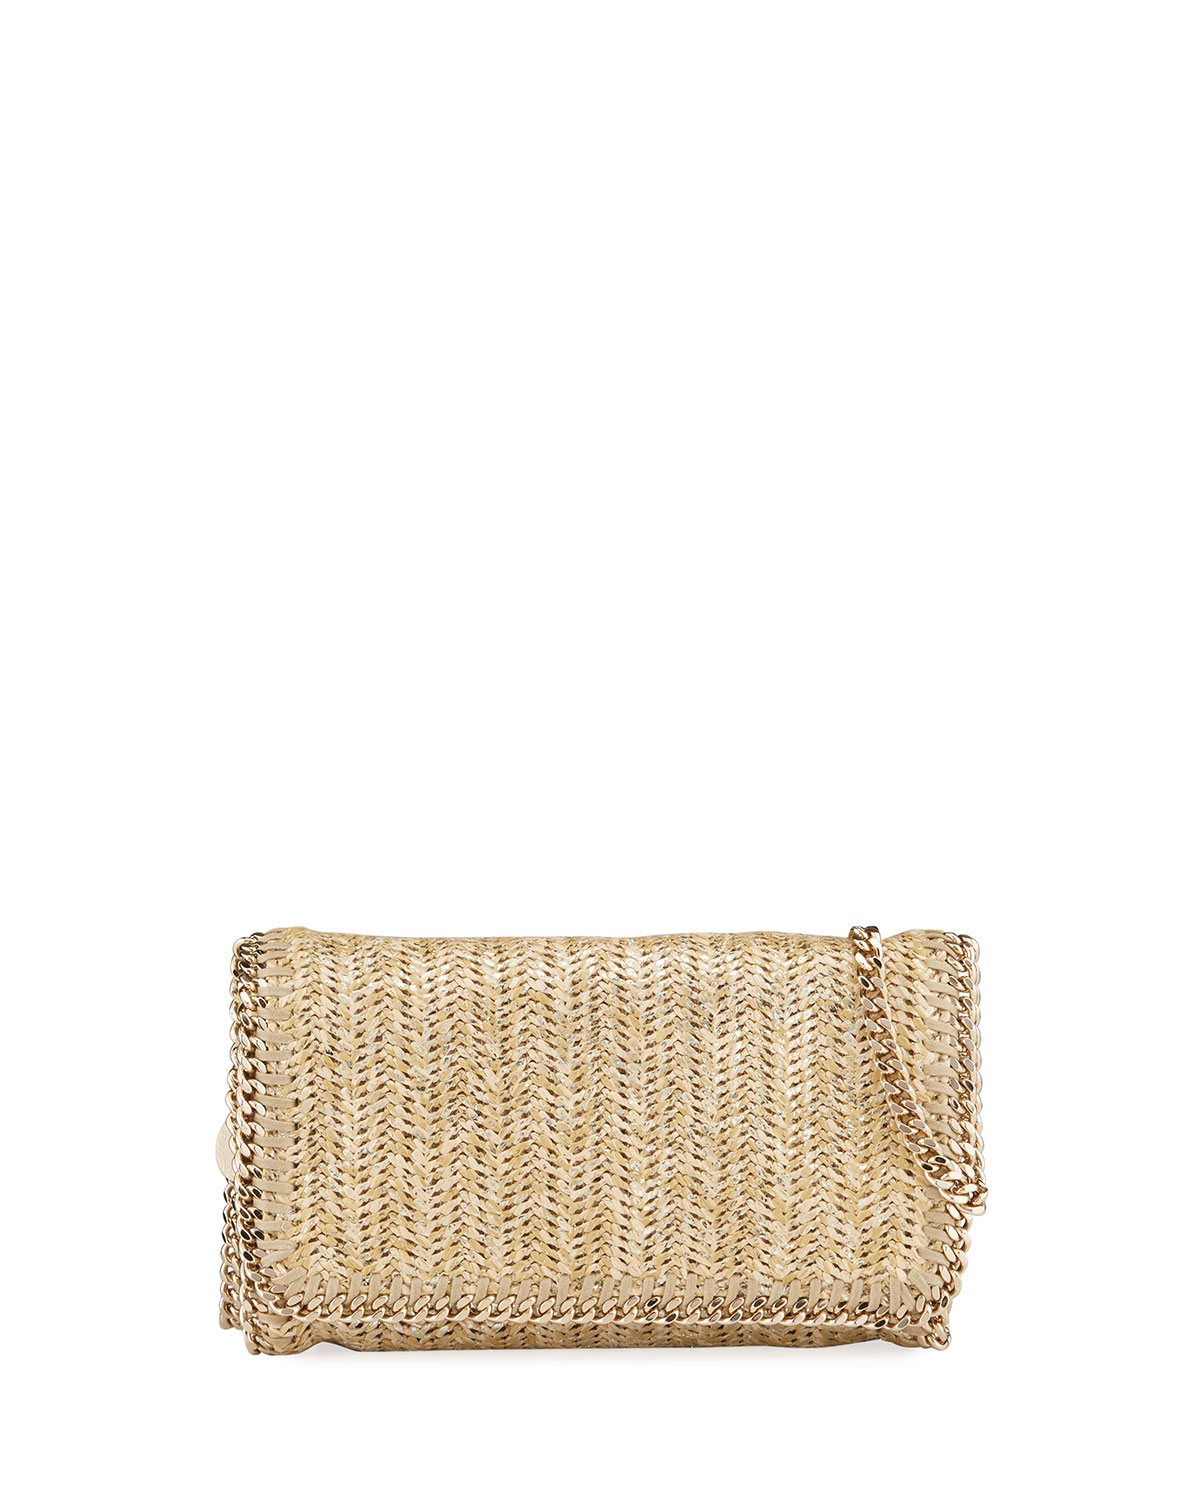 Stella Mccartney Clutch Metallic Falabella Clutch Bag In Gold